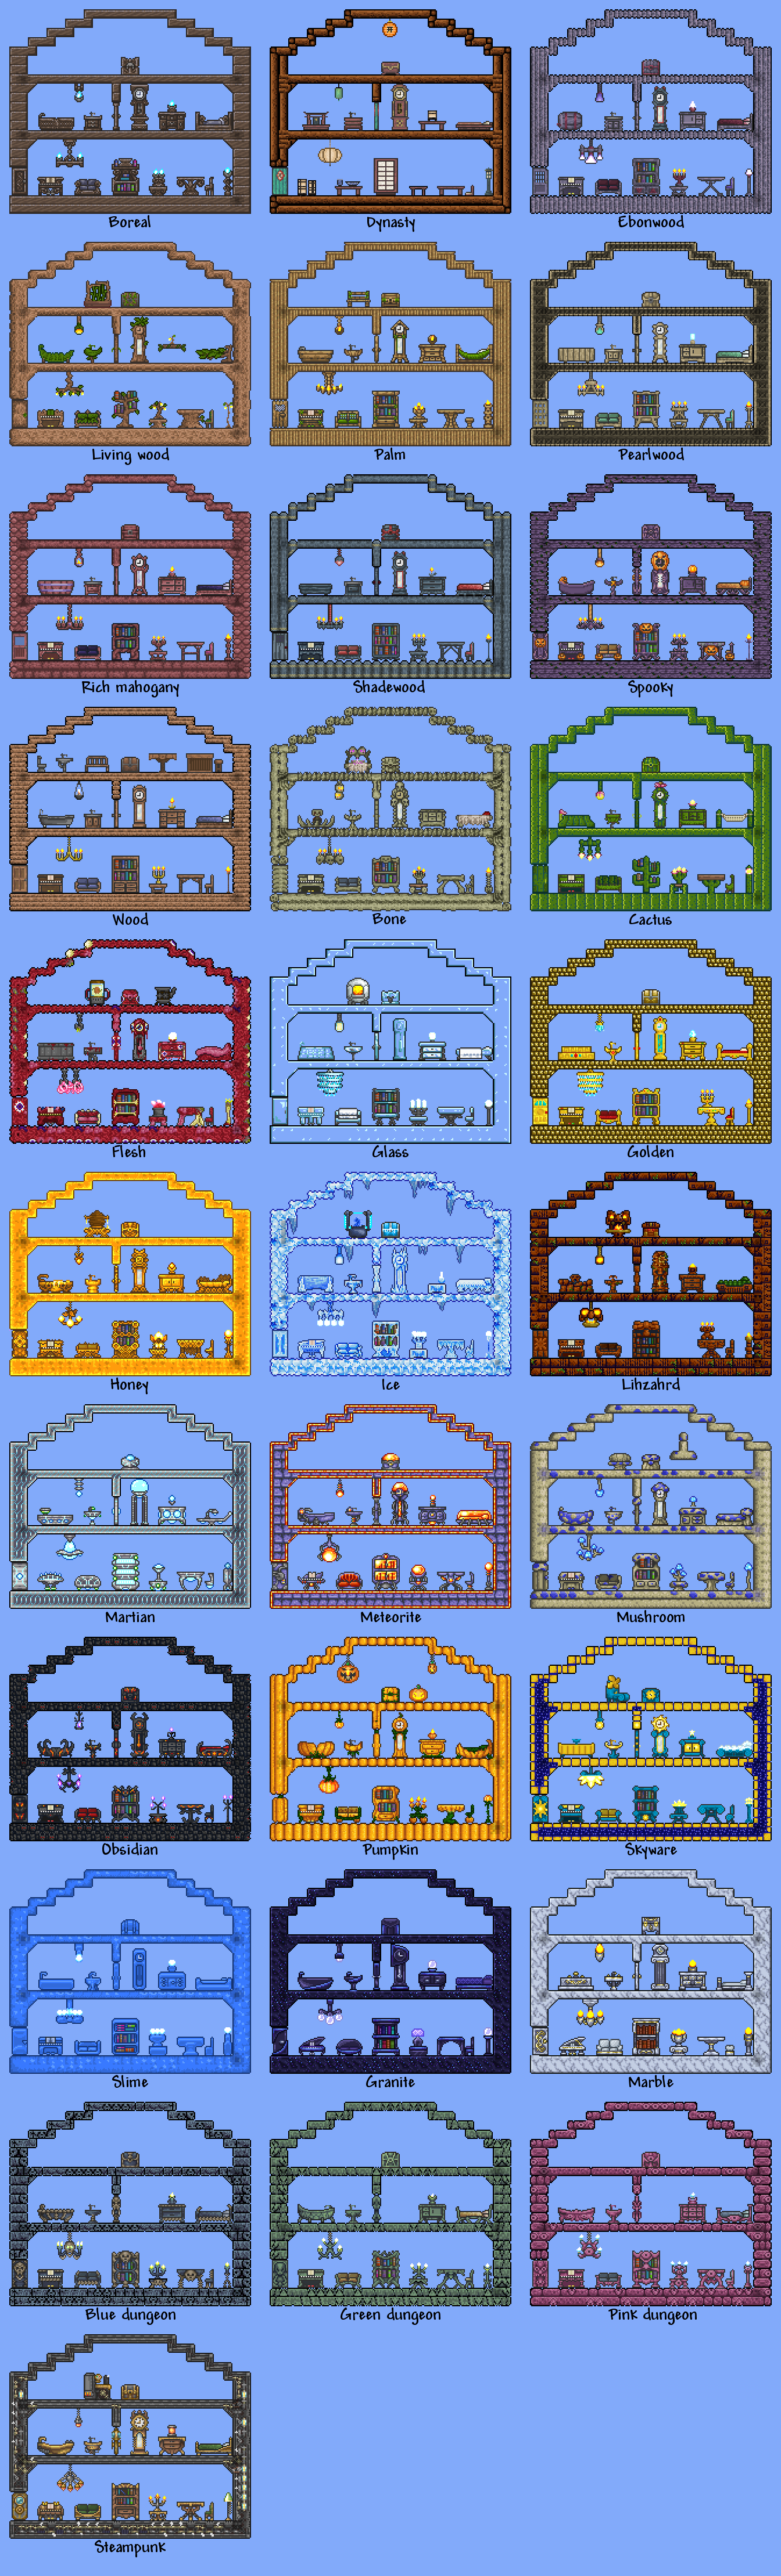 Furniture reference 3 terraria… sigh I know